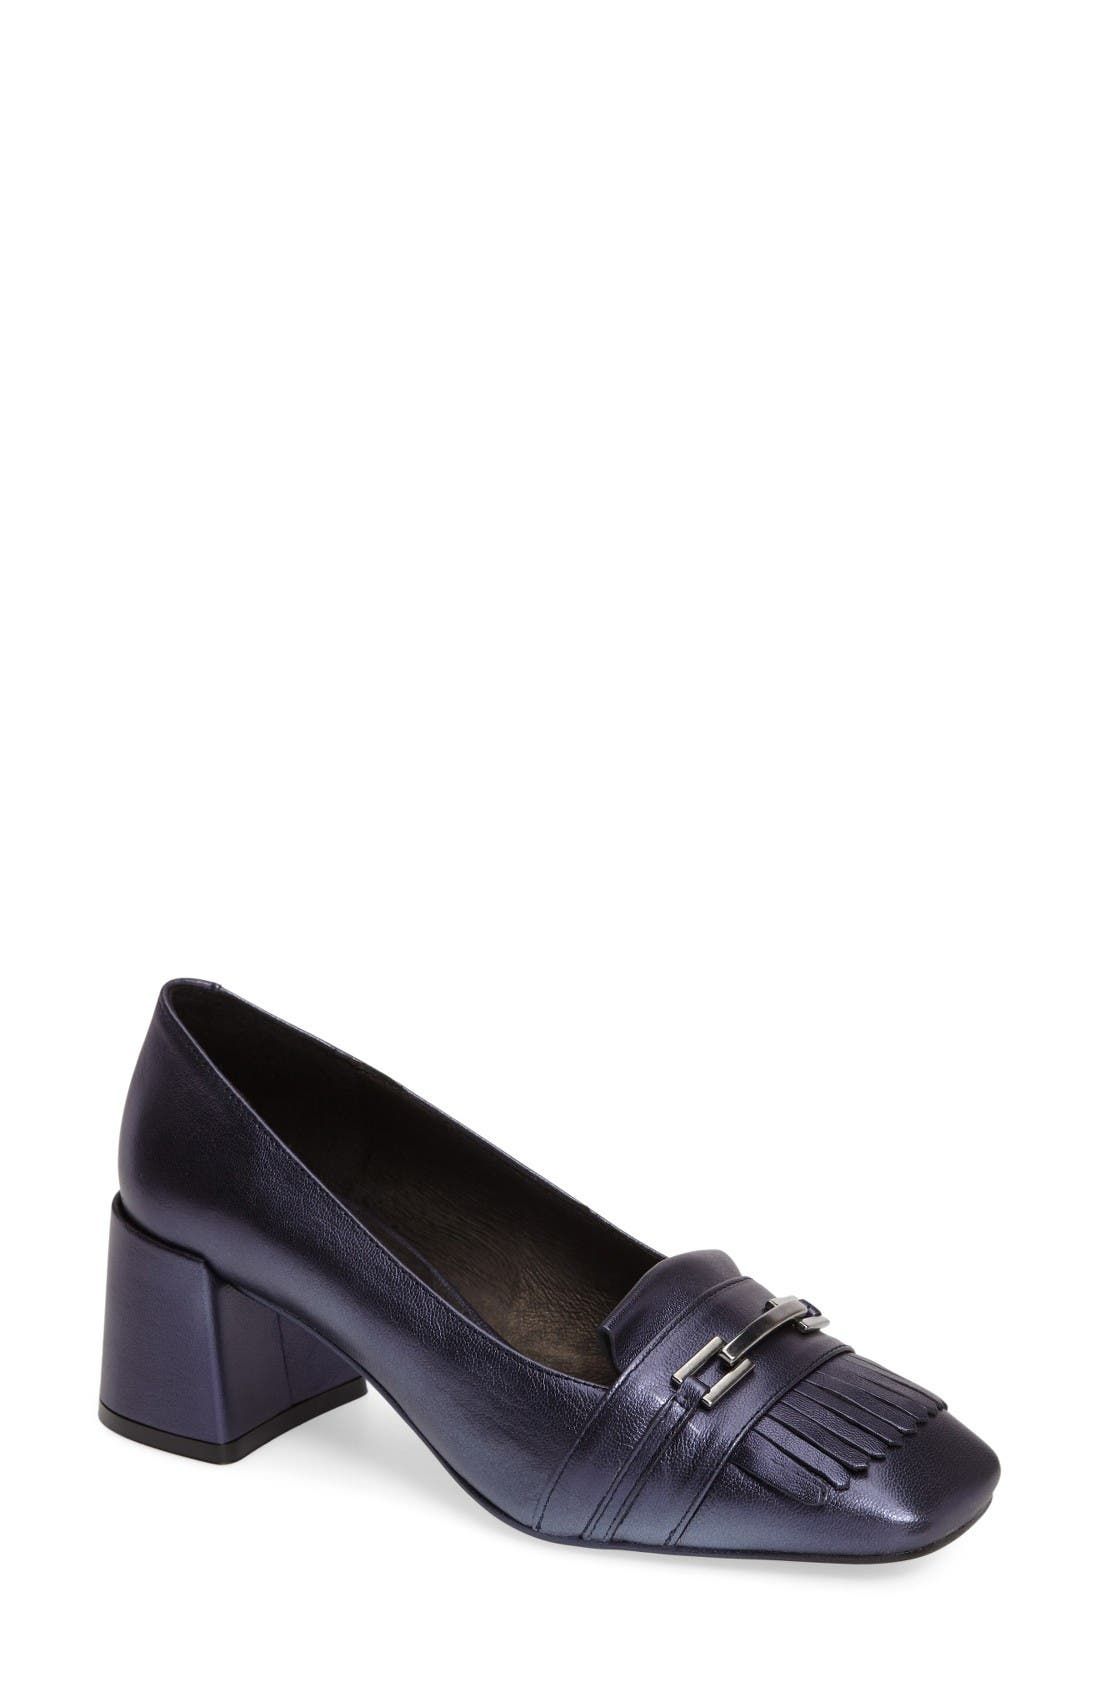 TOPSHOP 'Justify' Block Heel Loafer Pump